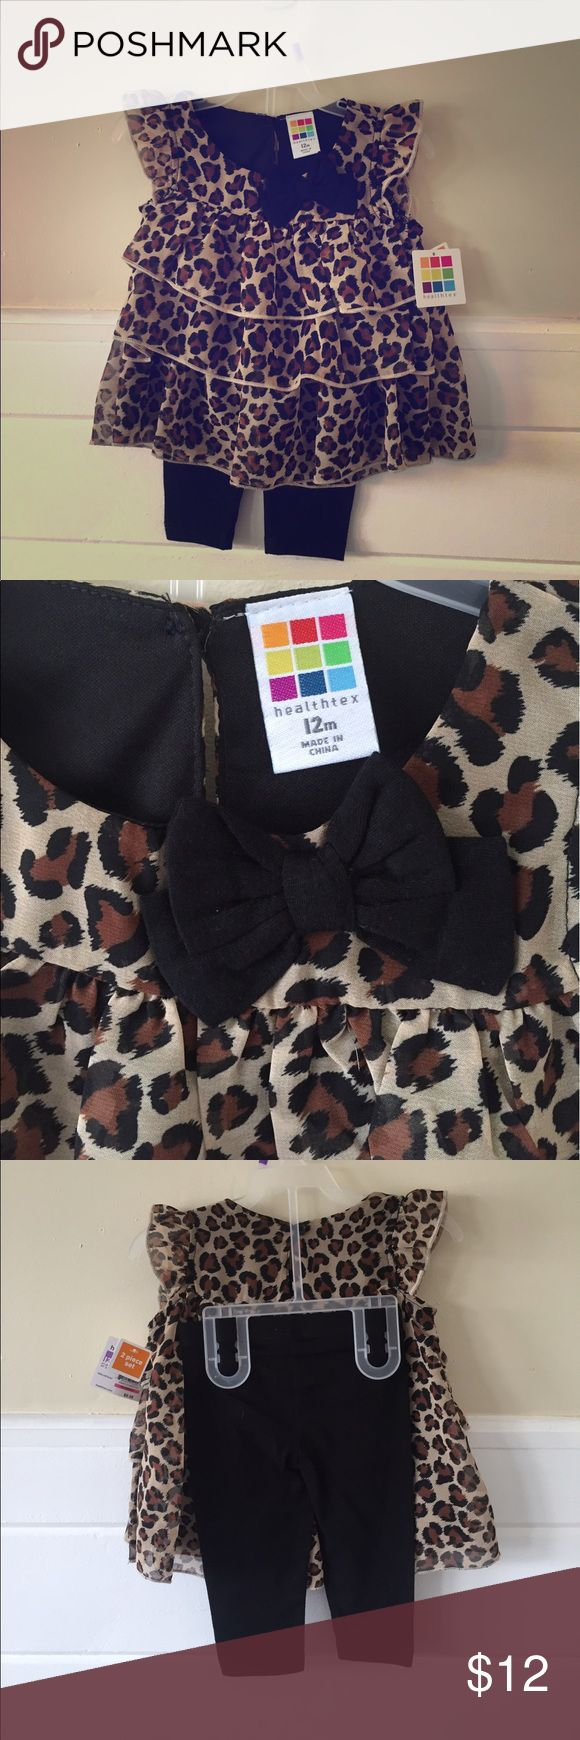 2 Piece Cheetah outfit Adorable! Never worn! Healthtext Matching Sets